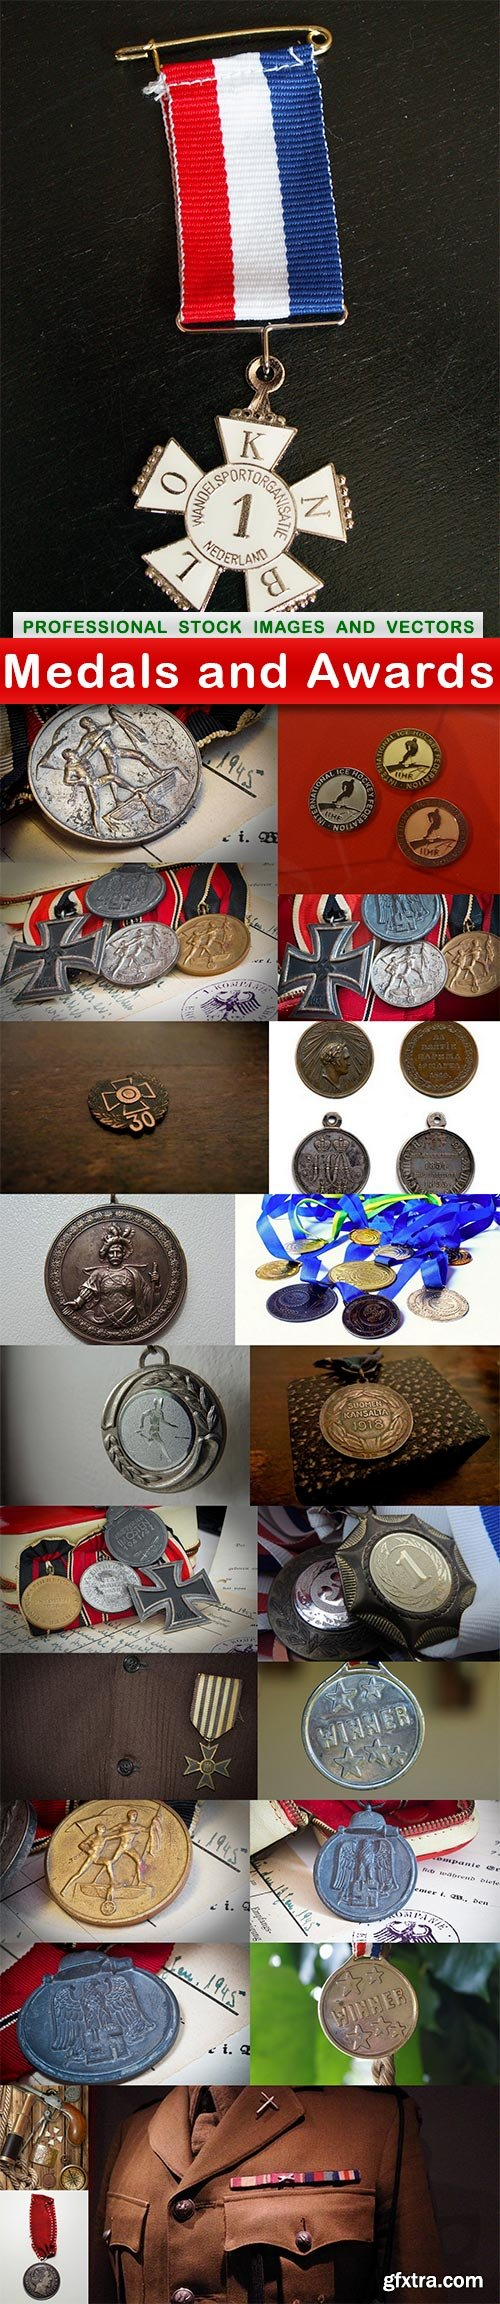 Medals and Awards - 22 UHQ JPEG